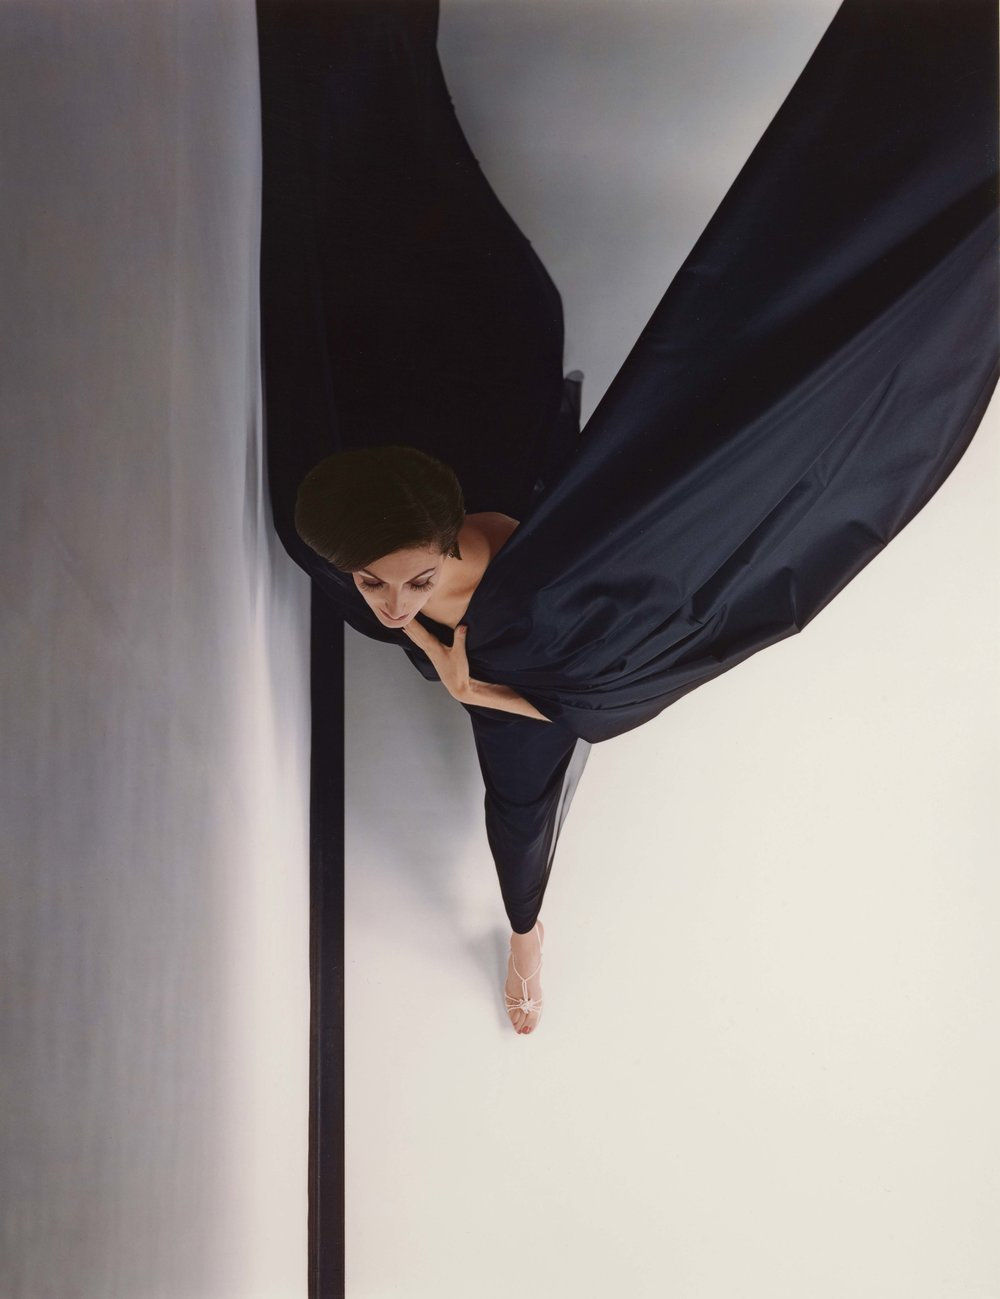 HIRO (American, born China, 1930),  Black Evening Dress in Flight, New York , negative, 1963; print, 1994. Dye imbibition print 48.9 × 38.1 cm (191⁄4 × 15 in.) Los Angeles, J. Paul Getty Museum, Purchased with funds provided by the Photographs Council, 2012.24.2. © Hiro